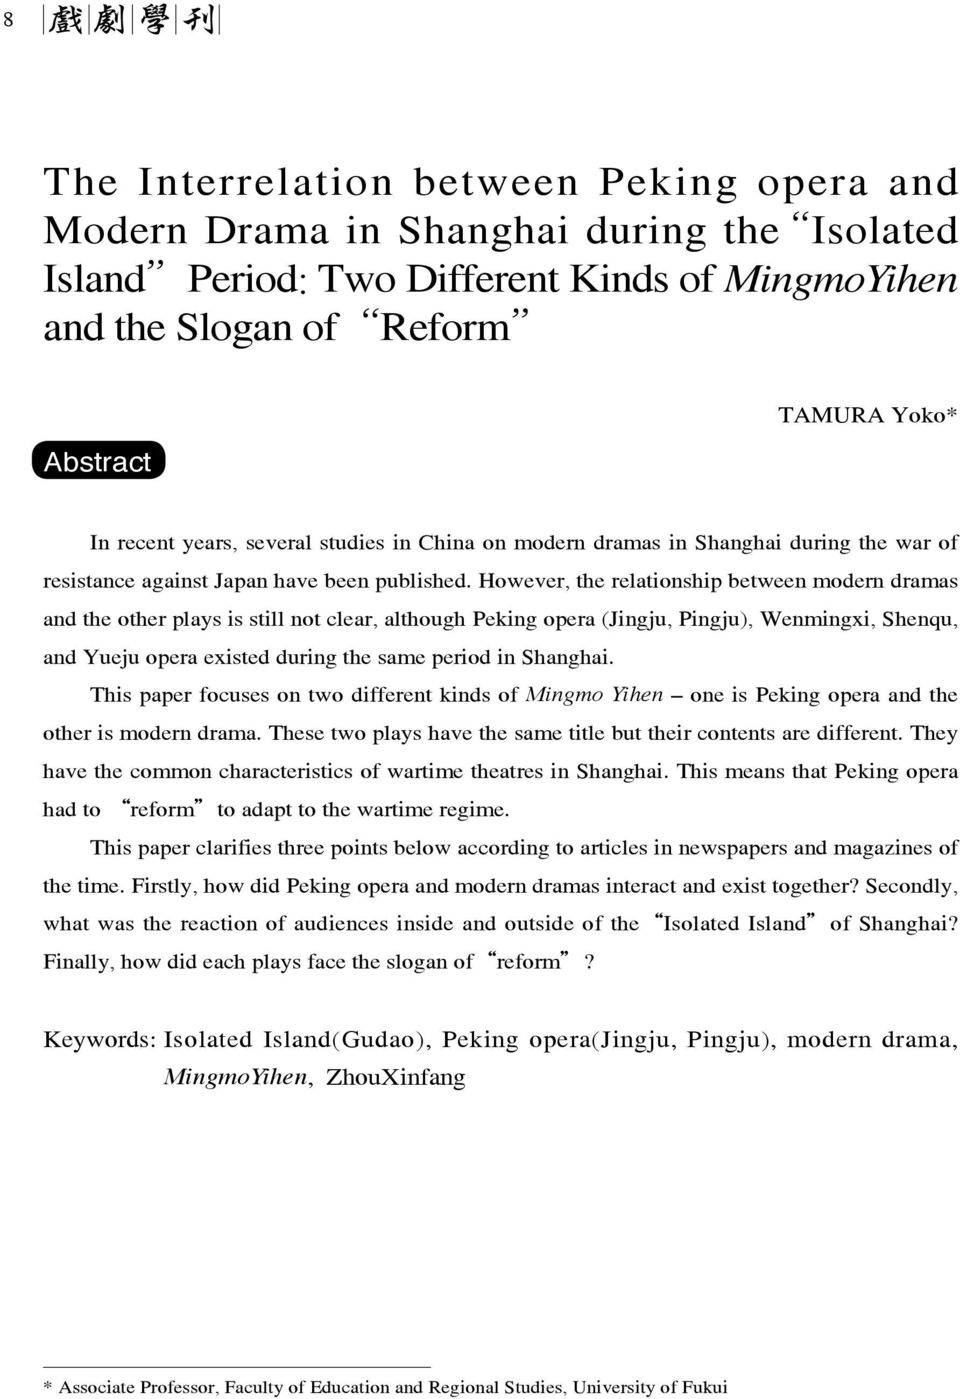 However, the relationship between modern dramas and the other plays is still not clear, although Peking opera (Jingju, Pingju), Wenmingxi, Shenqu, and Yueju opera existed during the same period in